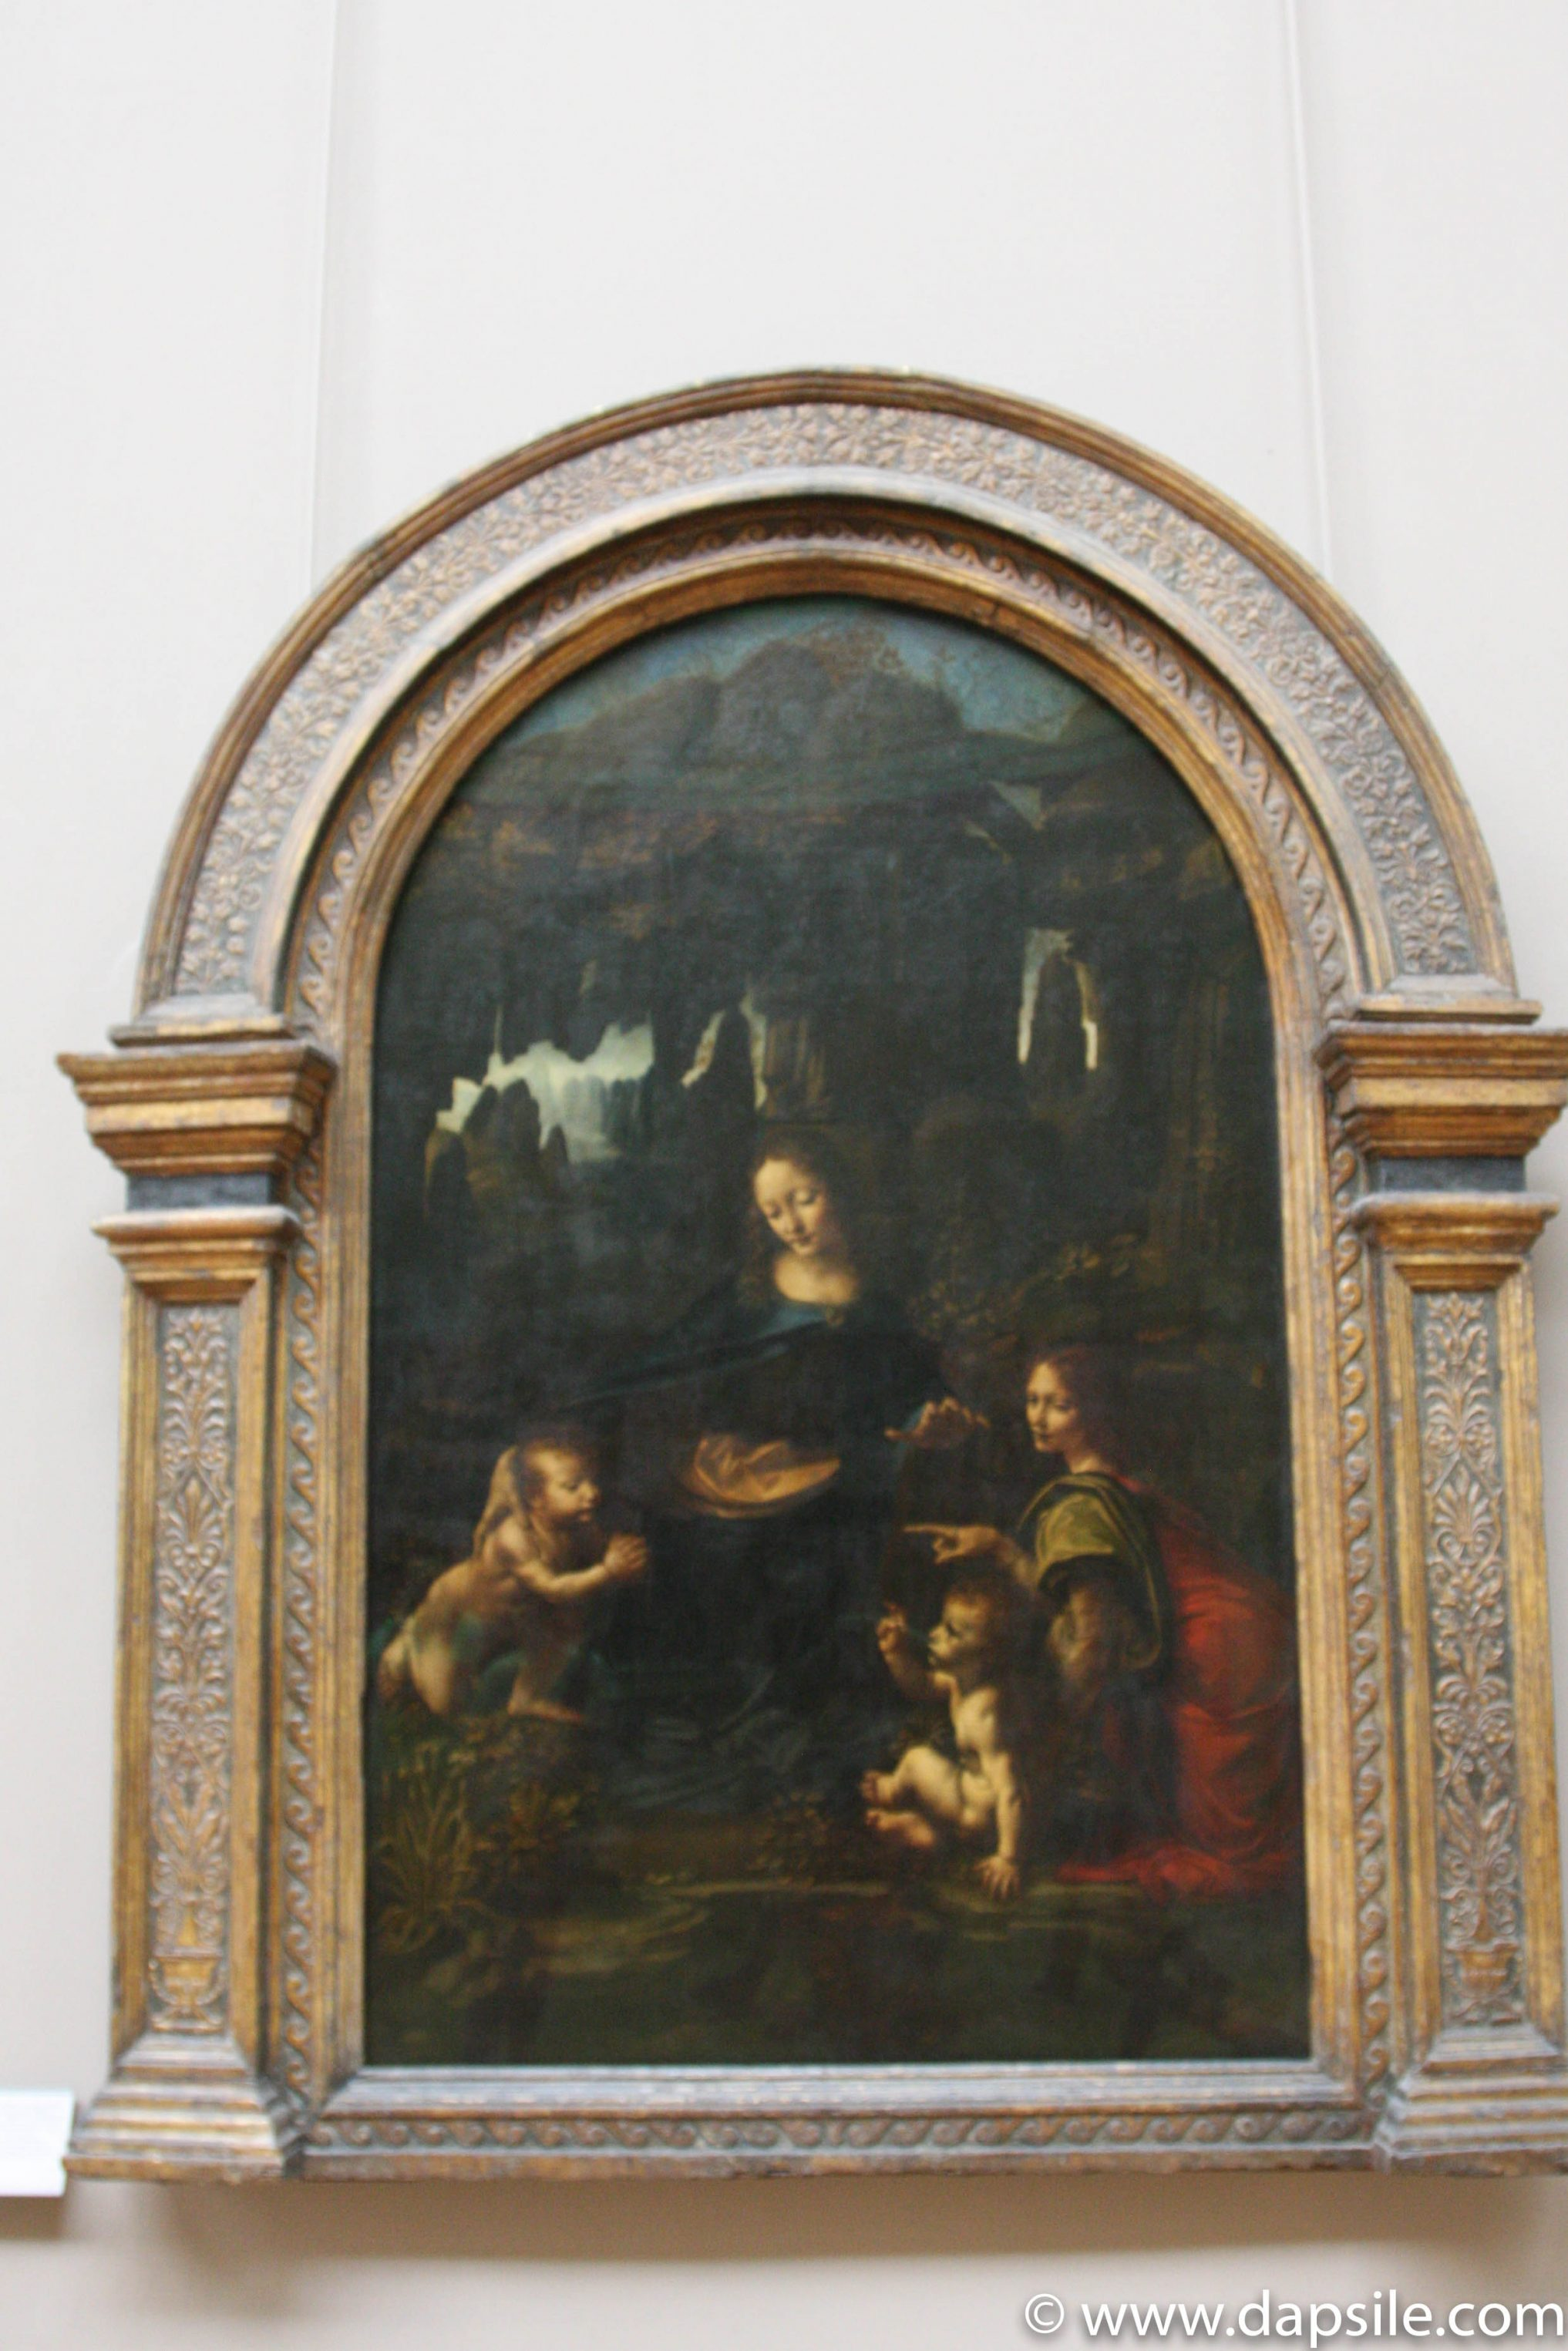 The Virgin of the Rocks painting by Leonardo Da Vinci at the Louvre in Paris